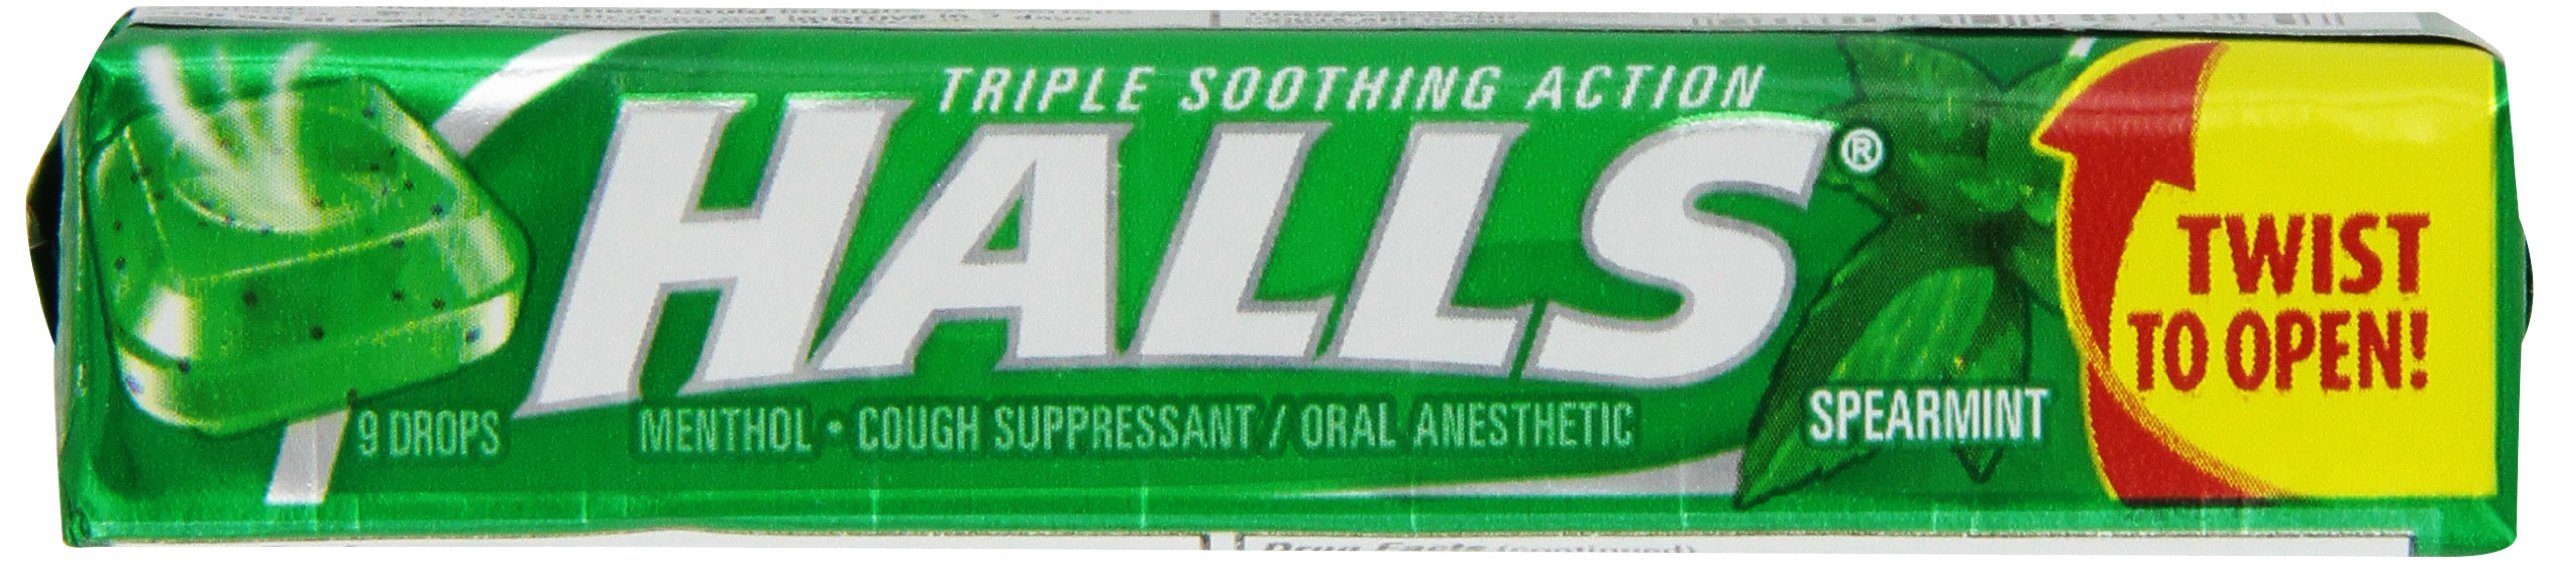 Halls Spearmint,  9 drop sticks (pack of 20)